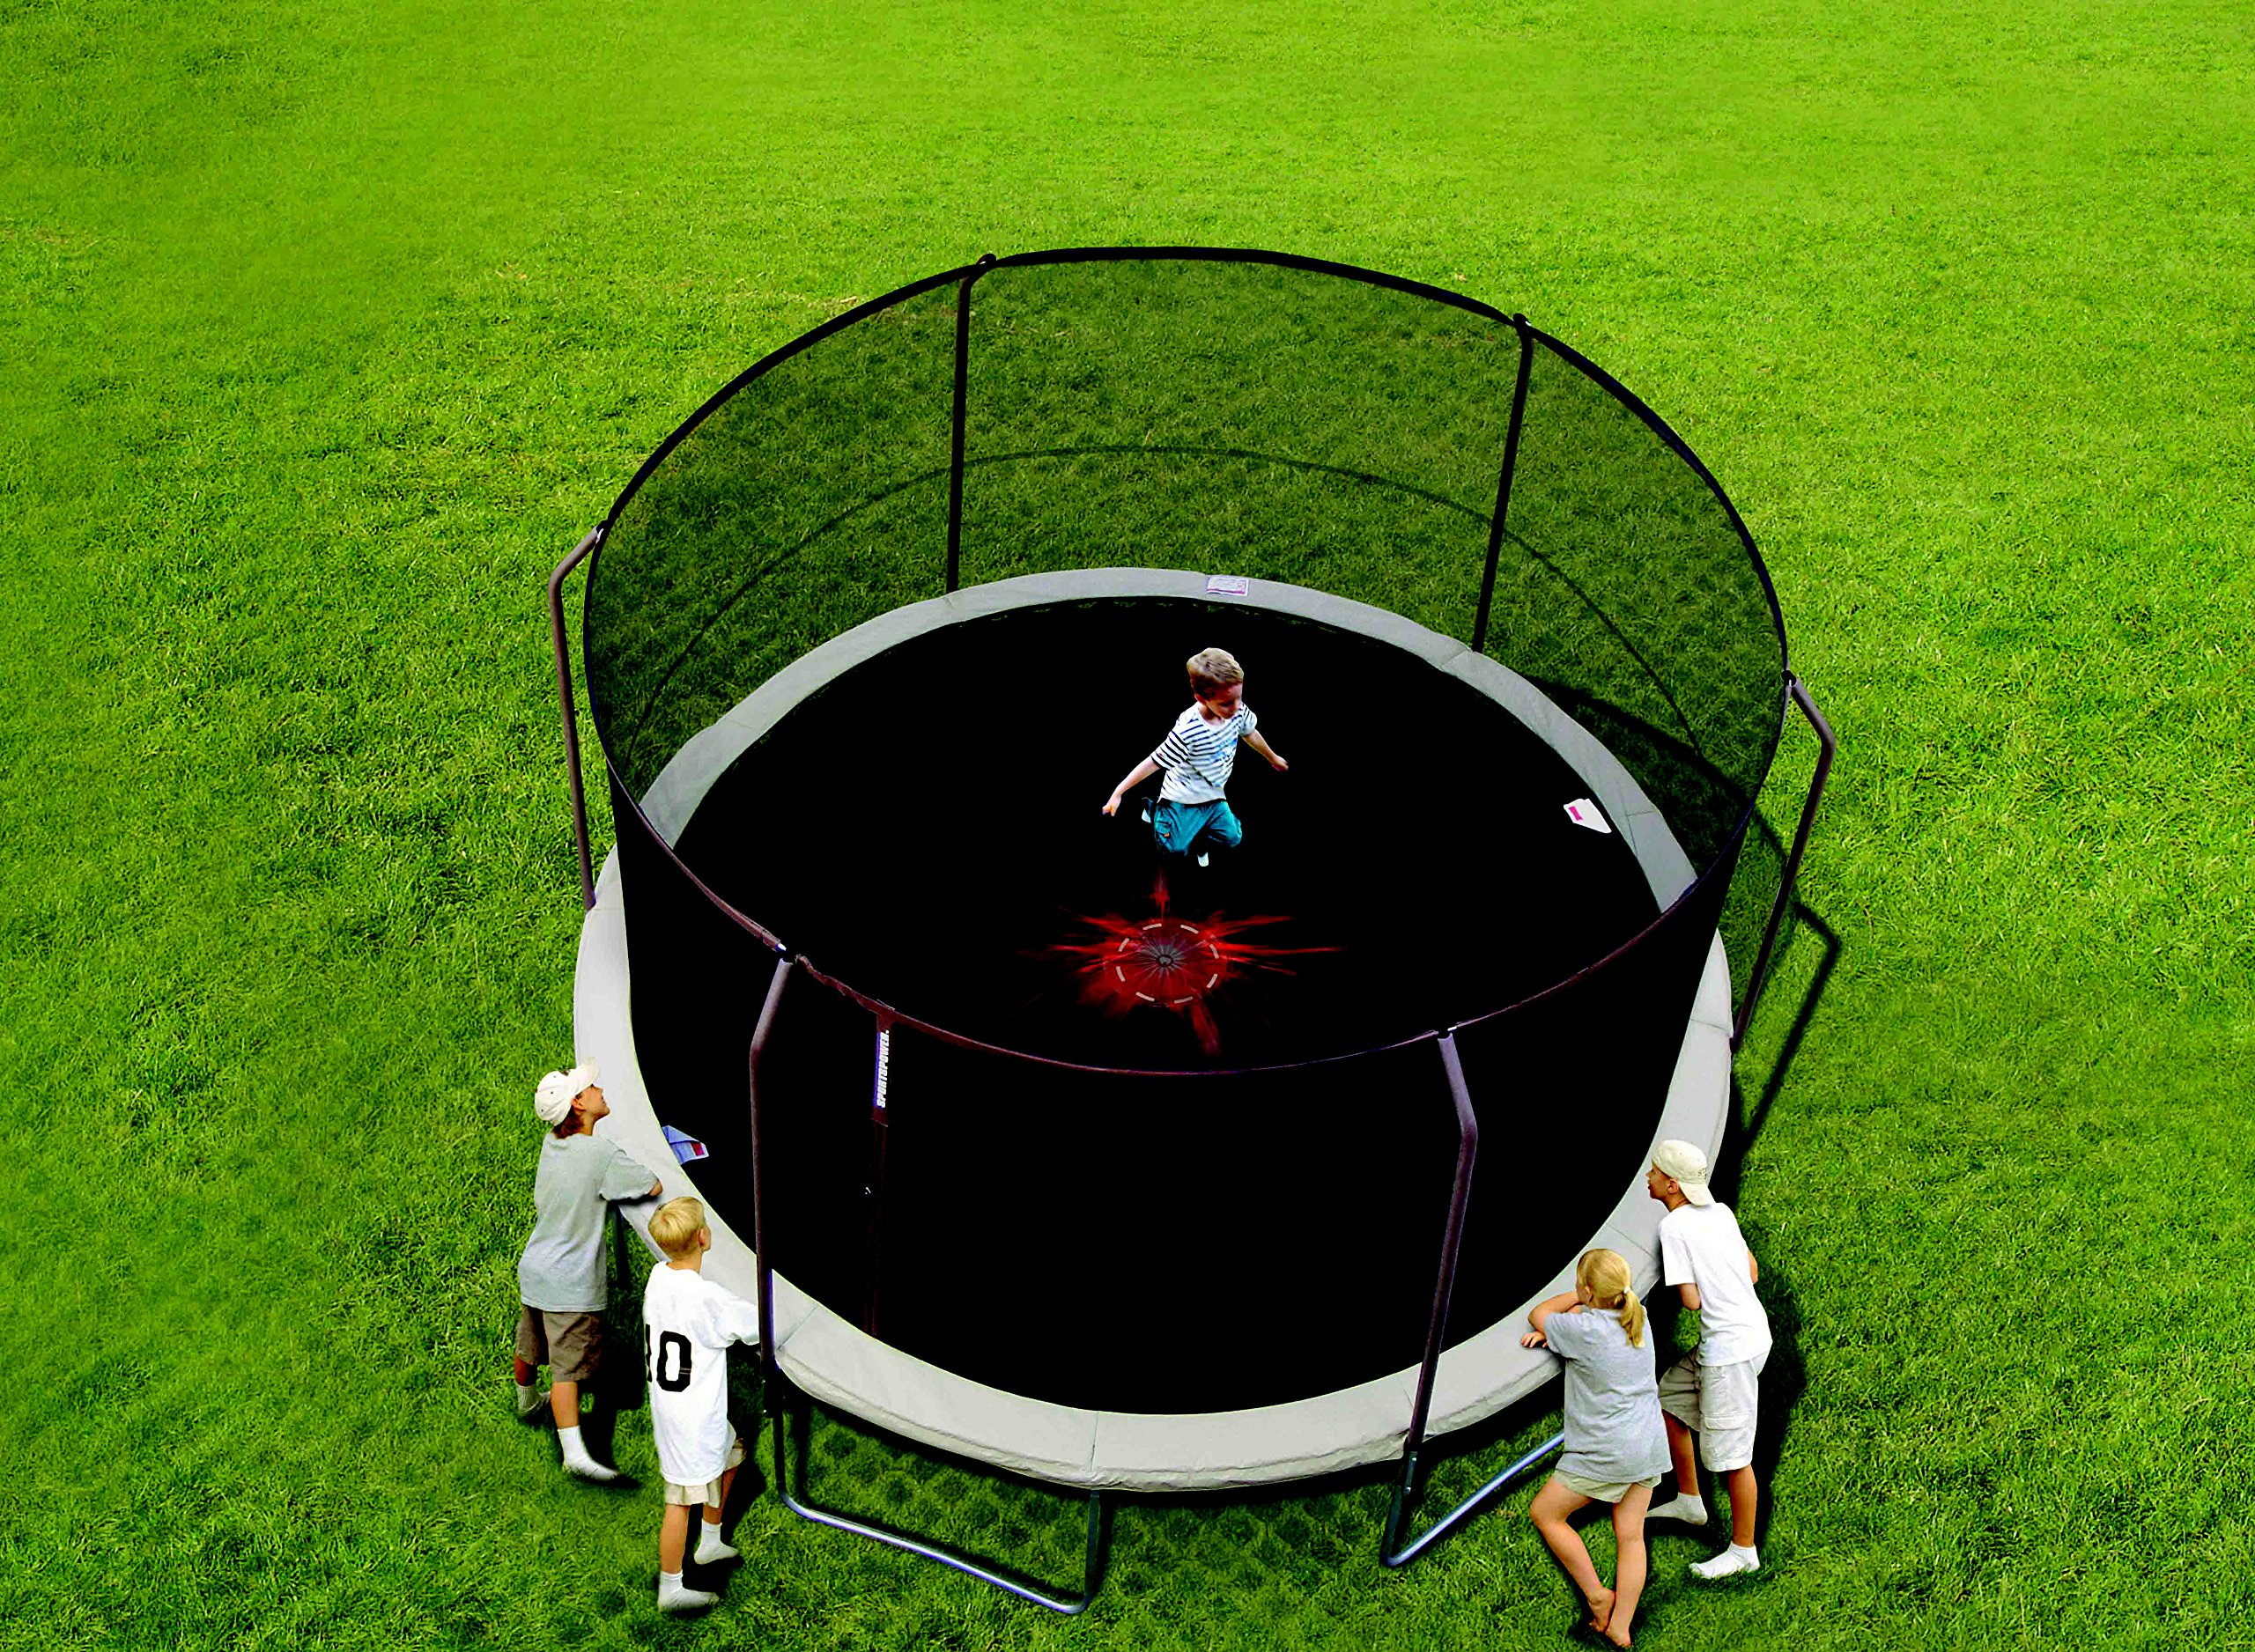 Trampoline Enclosure Mesh Net ONLY for 14' Bounce Pro Flex Models- OEM Equipment by Sportspower